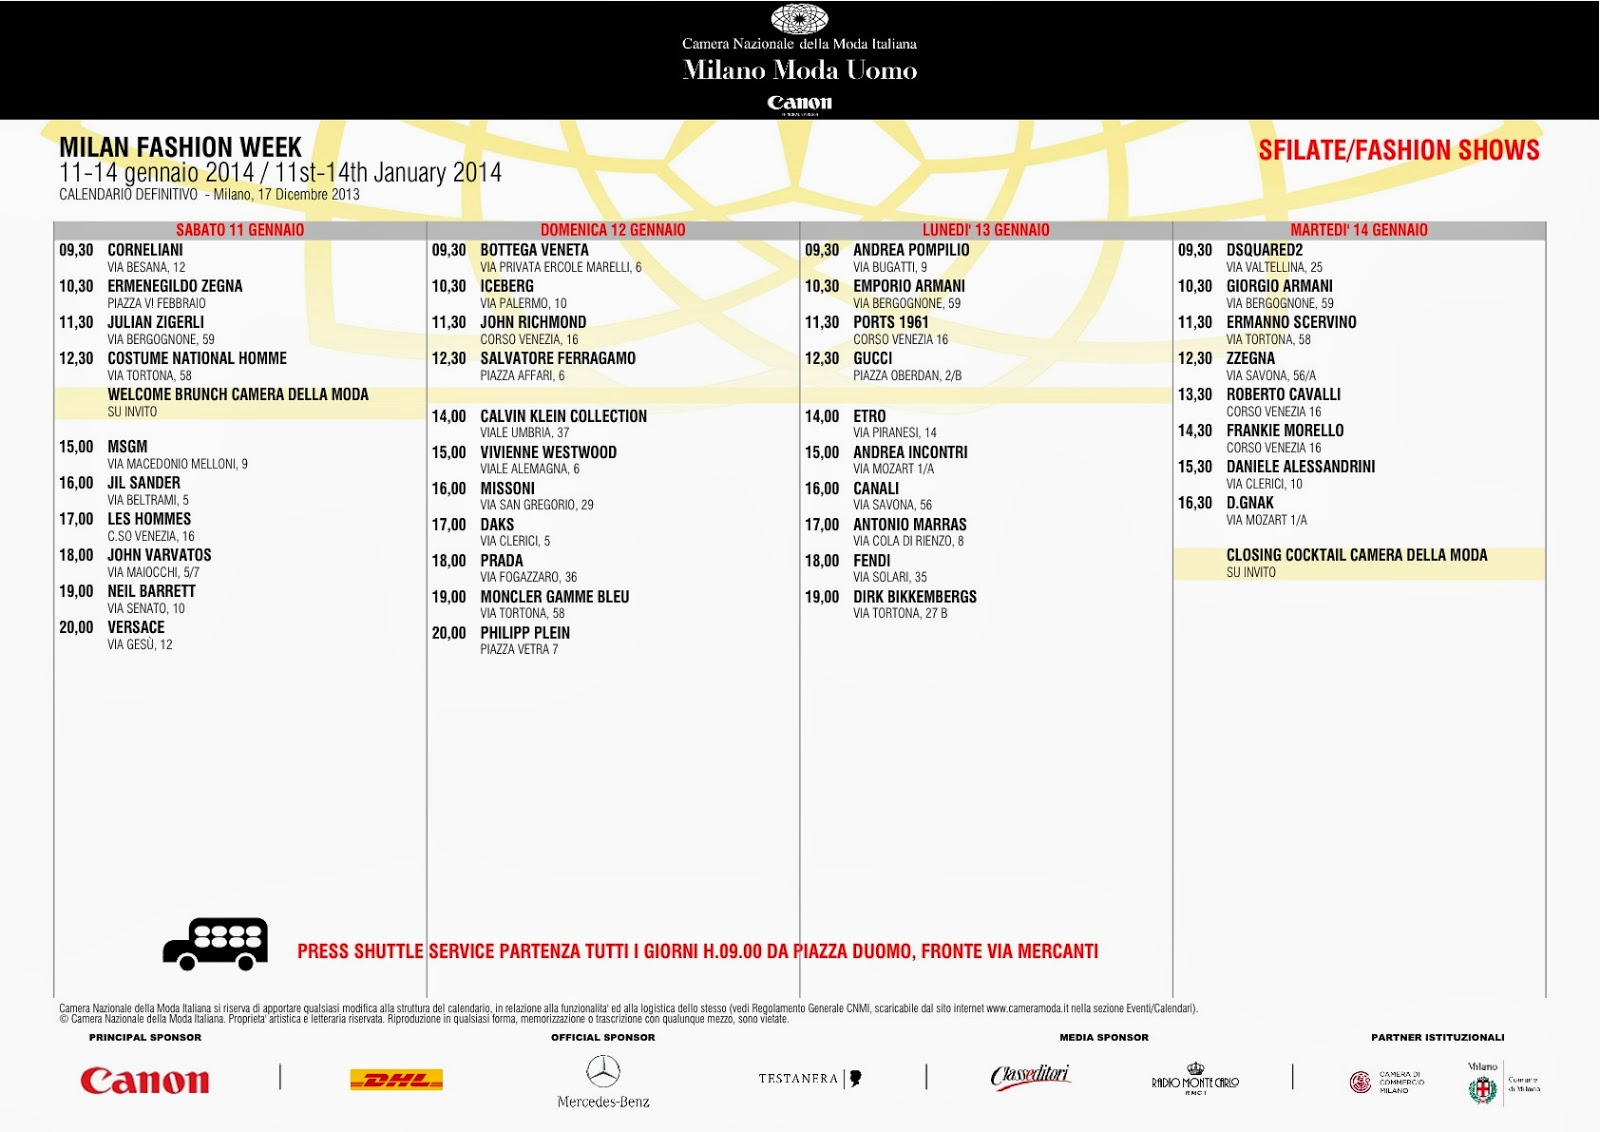 Dates For Paris Fashion Week 2015 Schedule.html